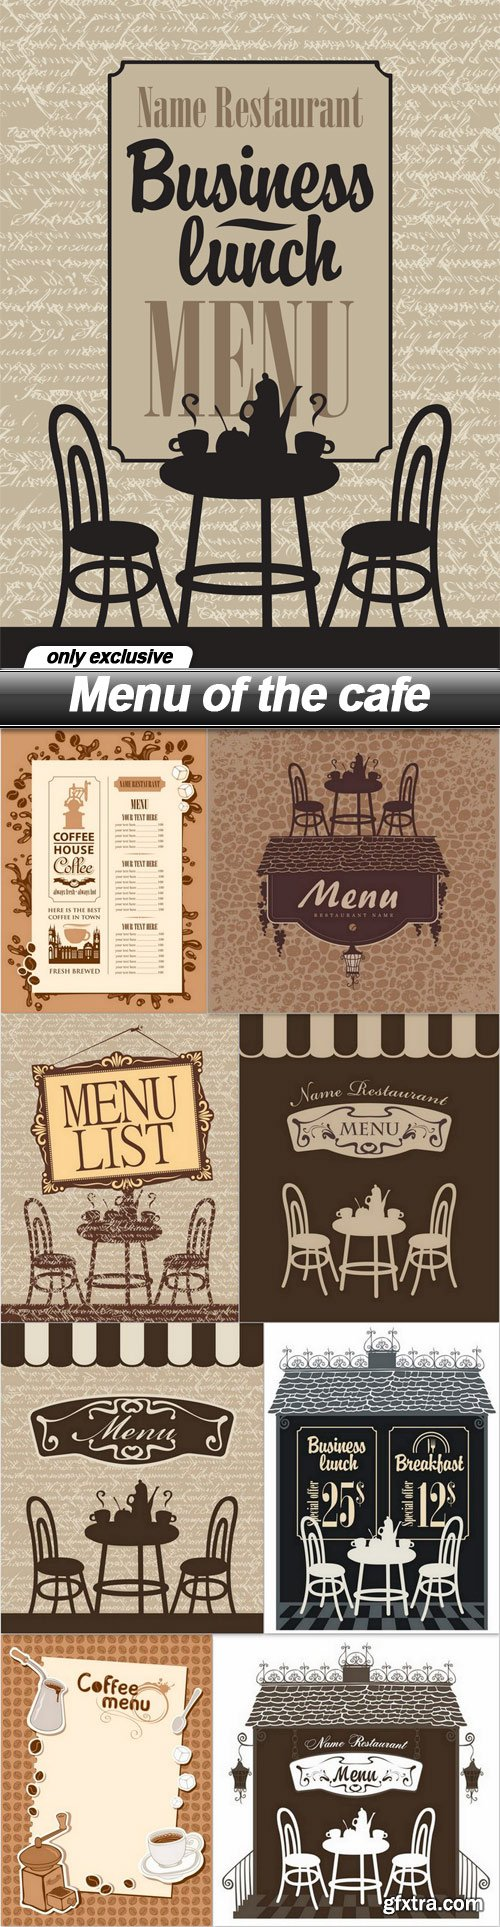 Menu of the cafe - 9 EPS